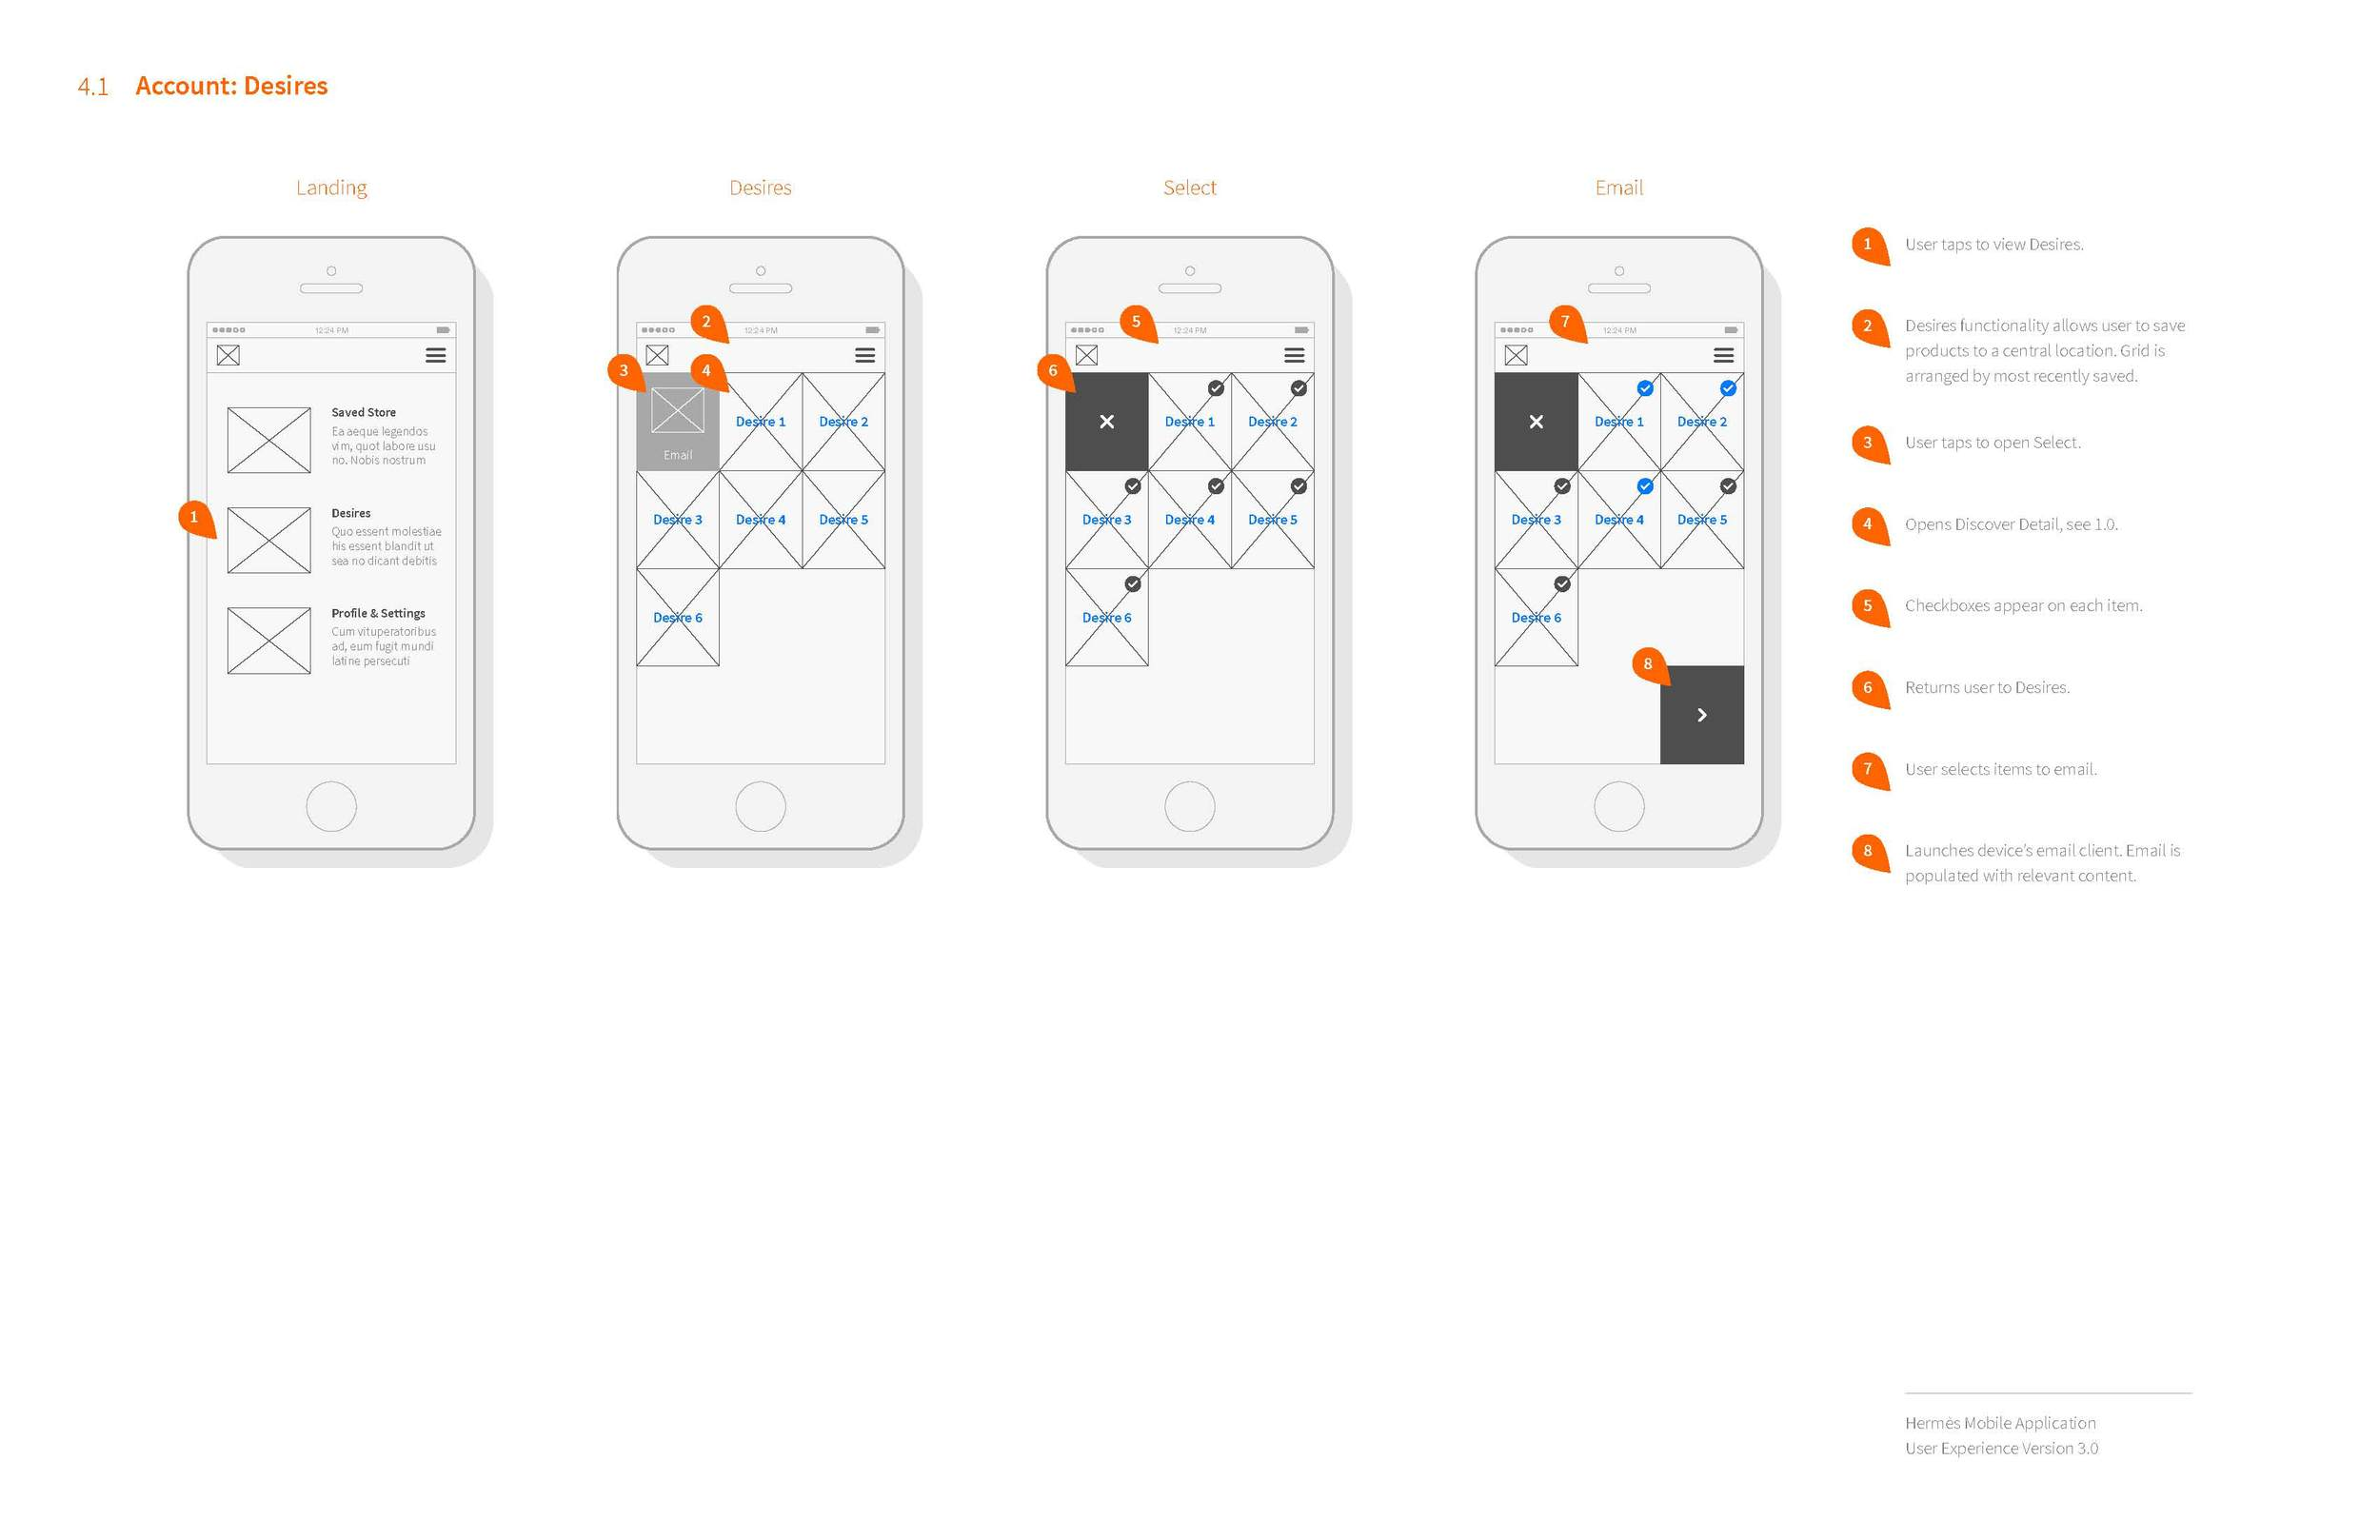 hermes-caraousel-wireframes_Page_15.jpg